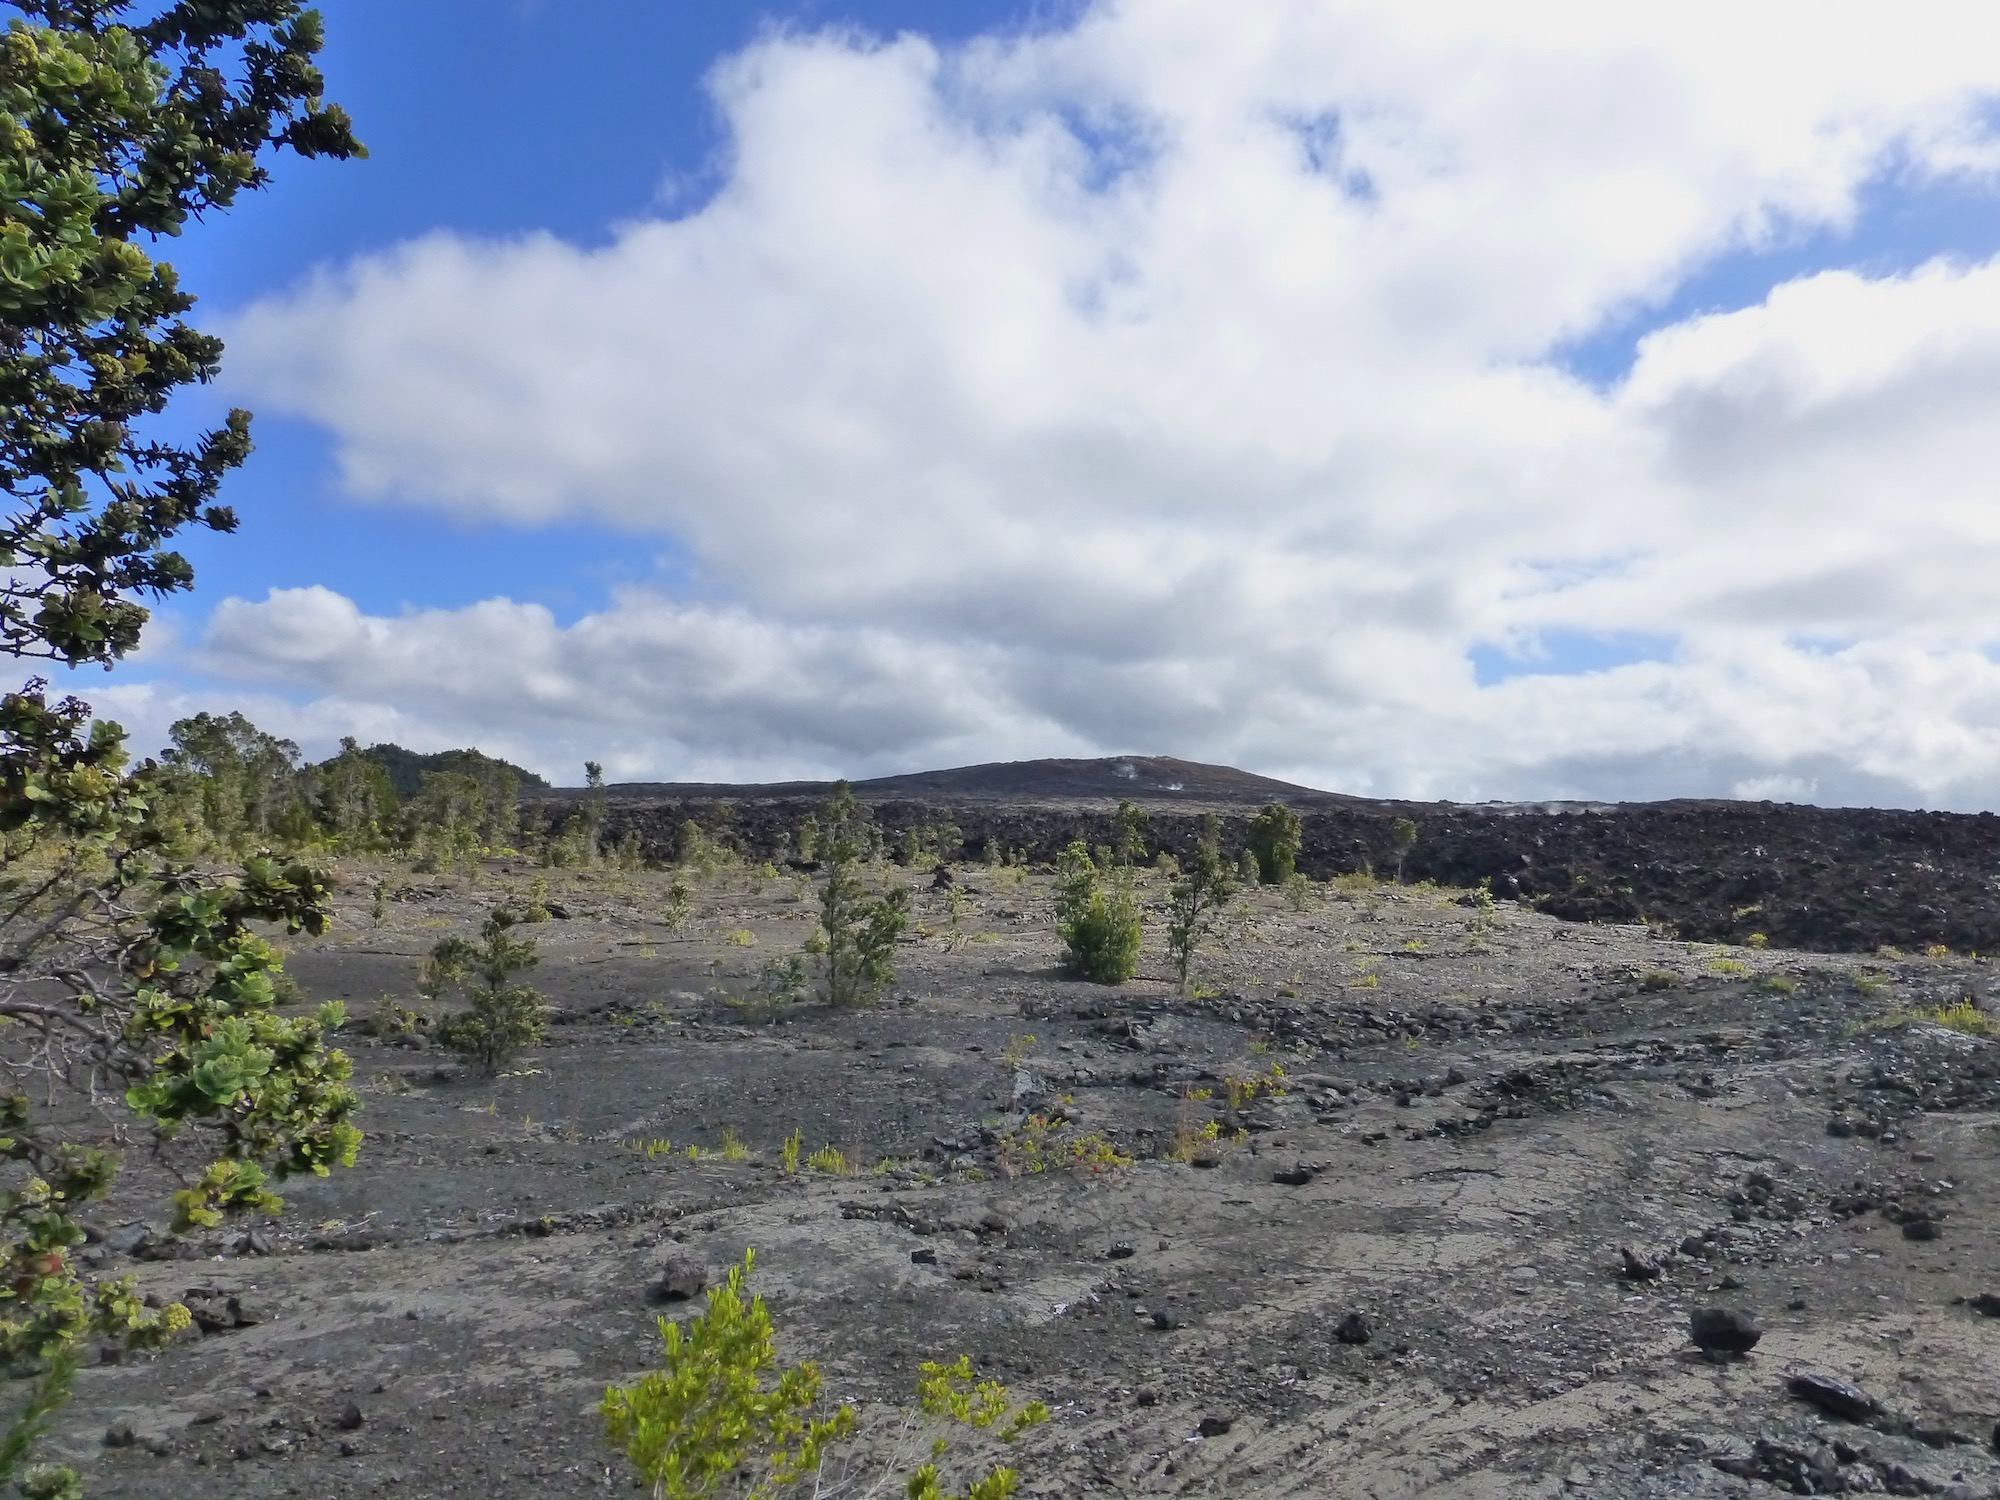 vista of lava fields with spots of greenery in Hawaii